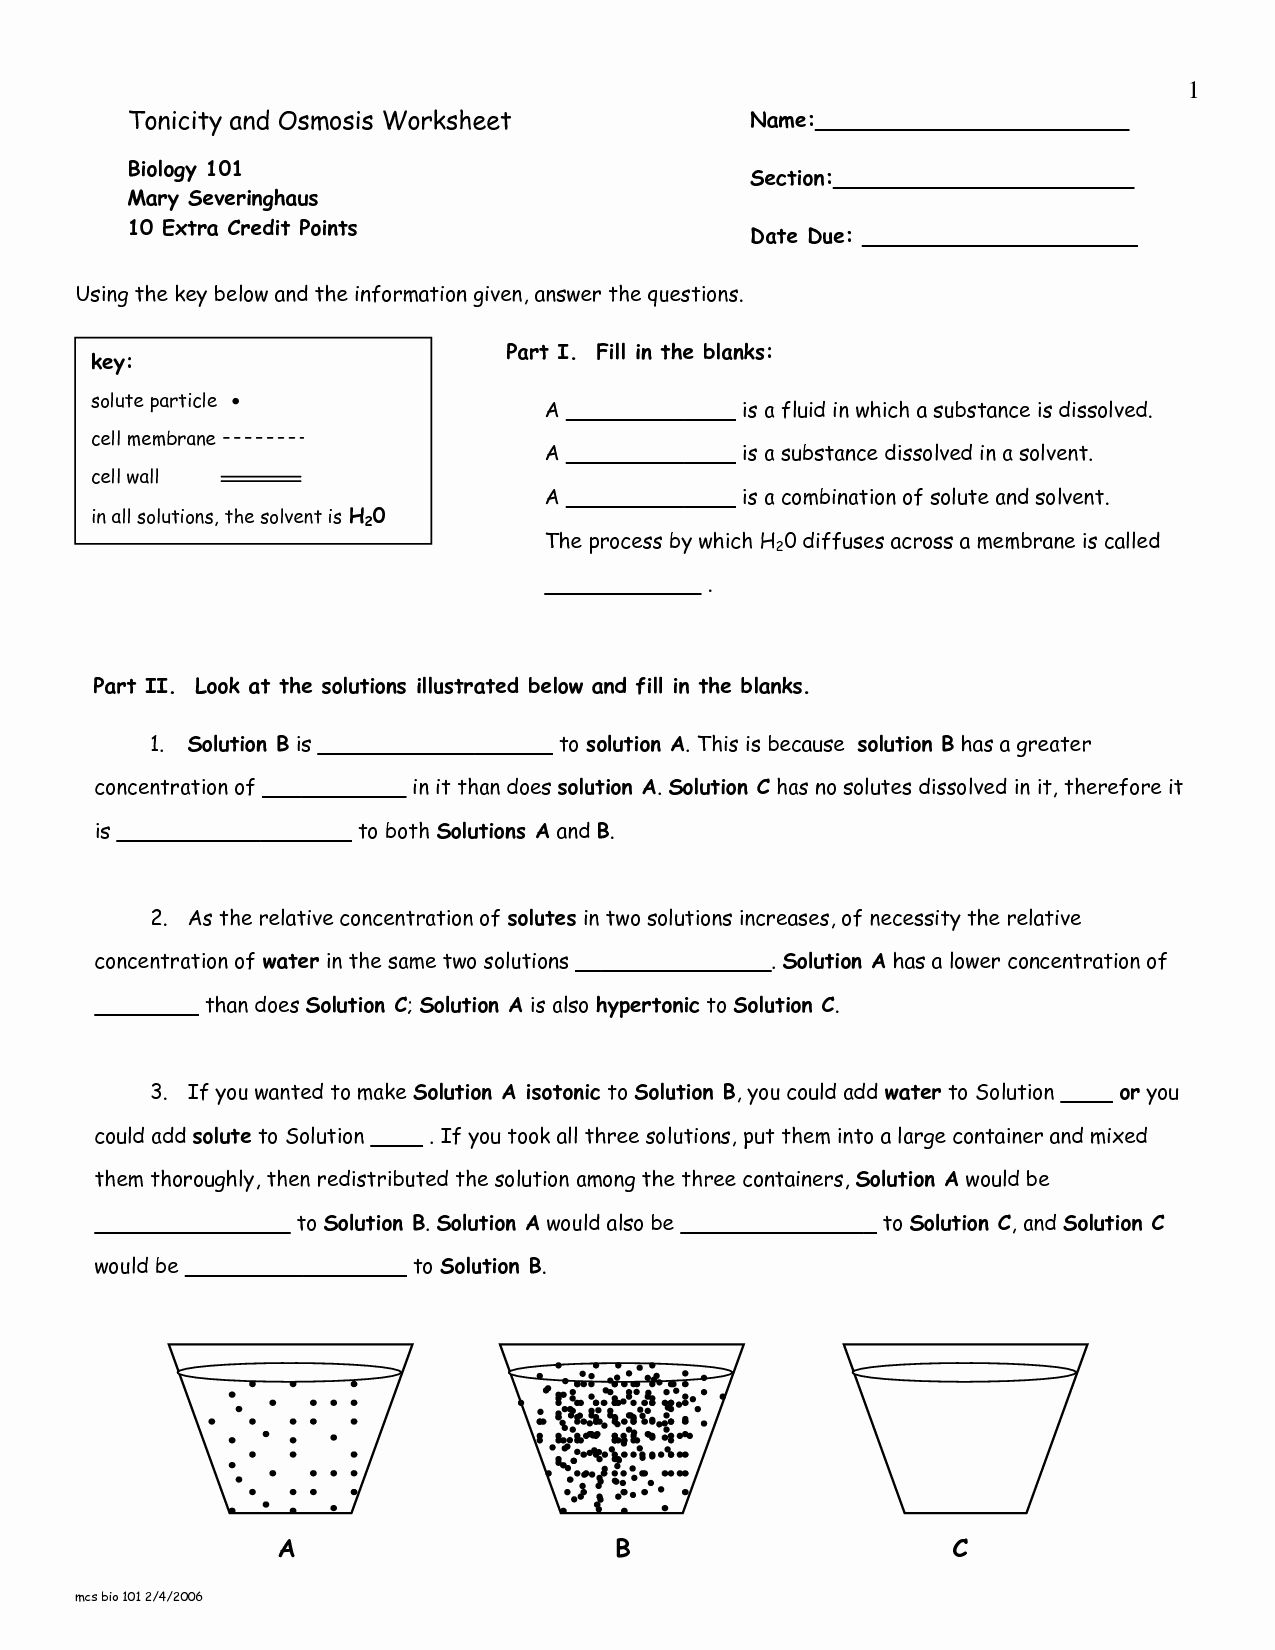 Osmosis Jones Video Worksheet Answers Inspirational Osmosis and Diffusion Worksheet